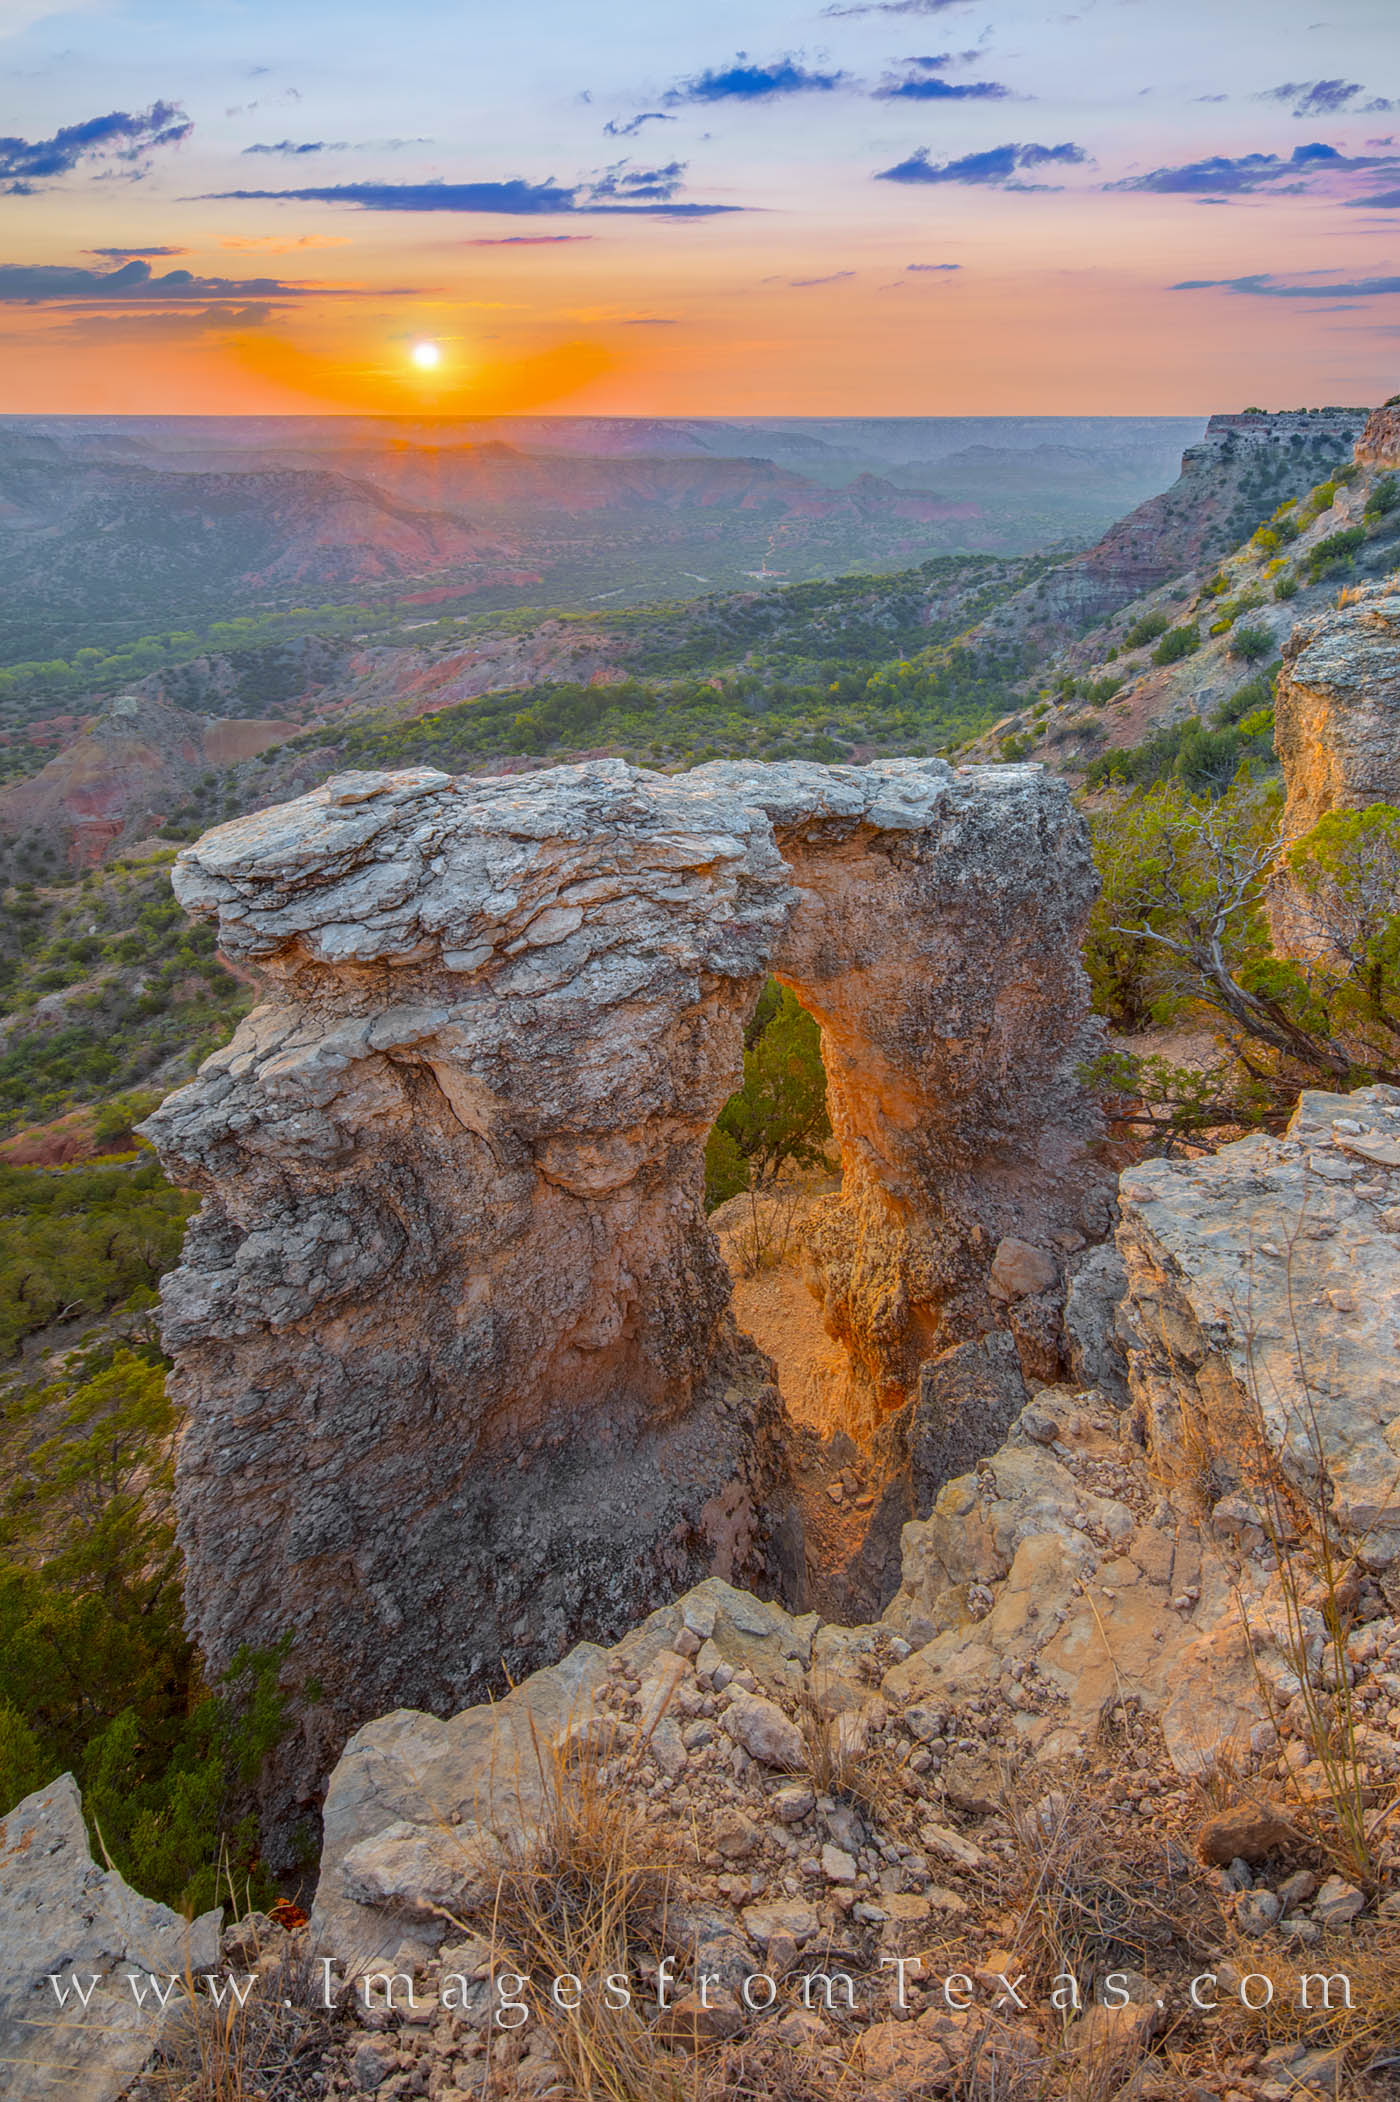 palo duro canyon, arch, alter, sunset, fortress cliff, eastern rim, palo duro prints, hiking, off trail, exploring, october, photo